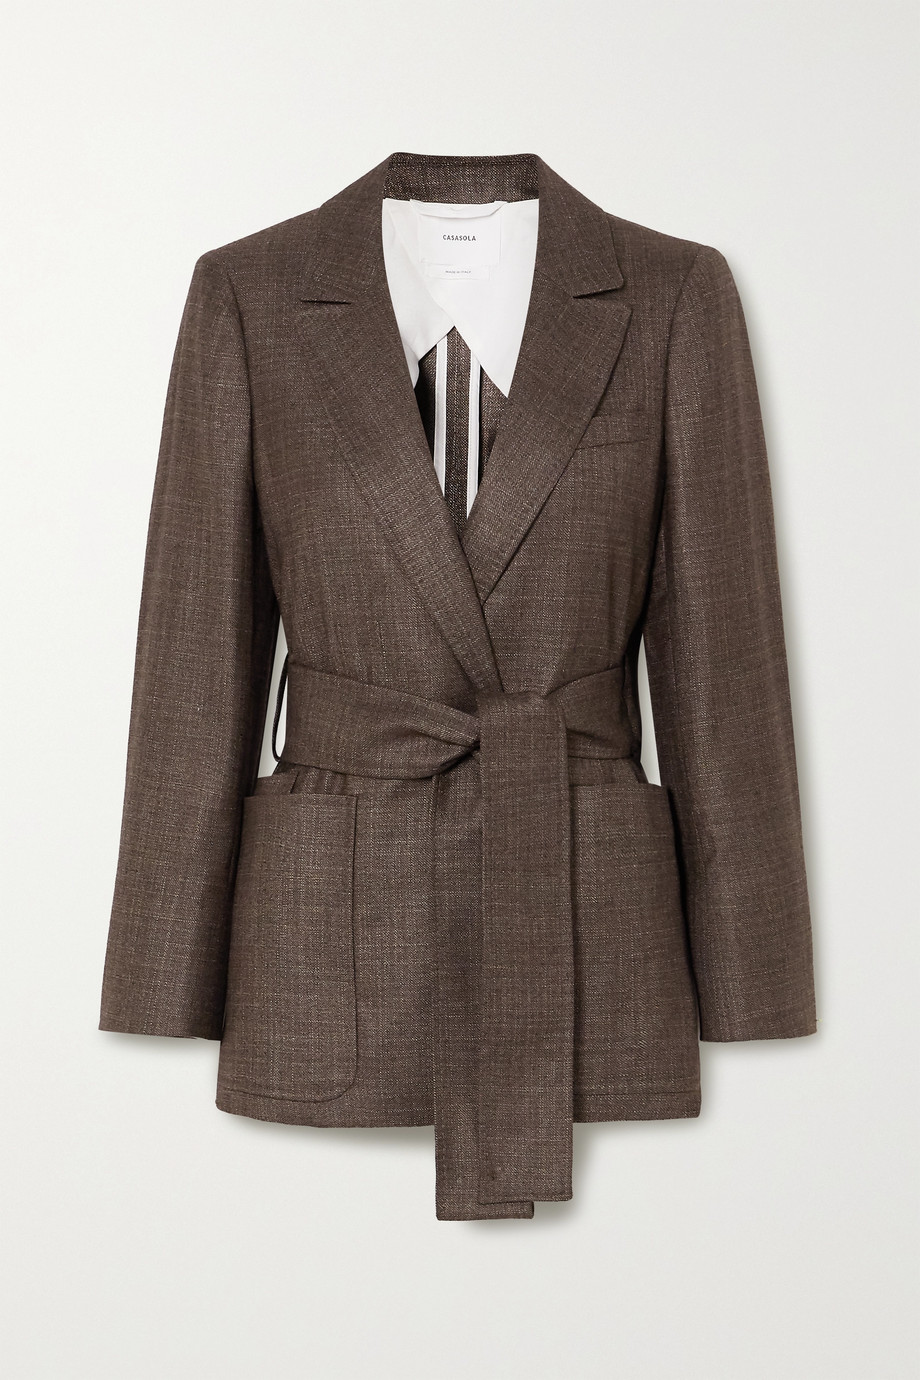 CASASOLA + NET SUSTAIN Giorgio belted silk and cashmere-blend blazer